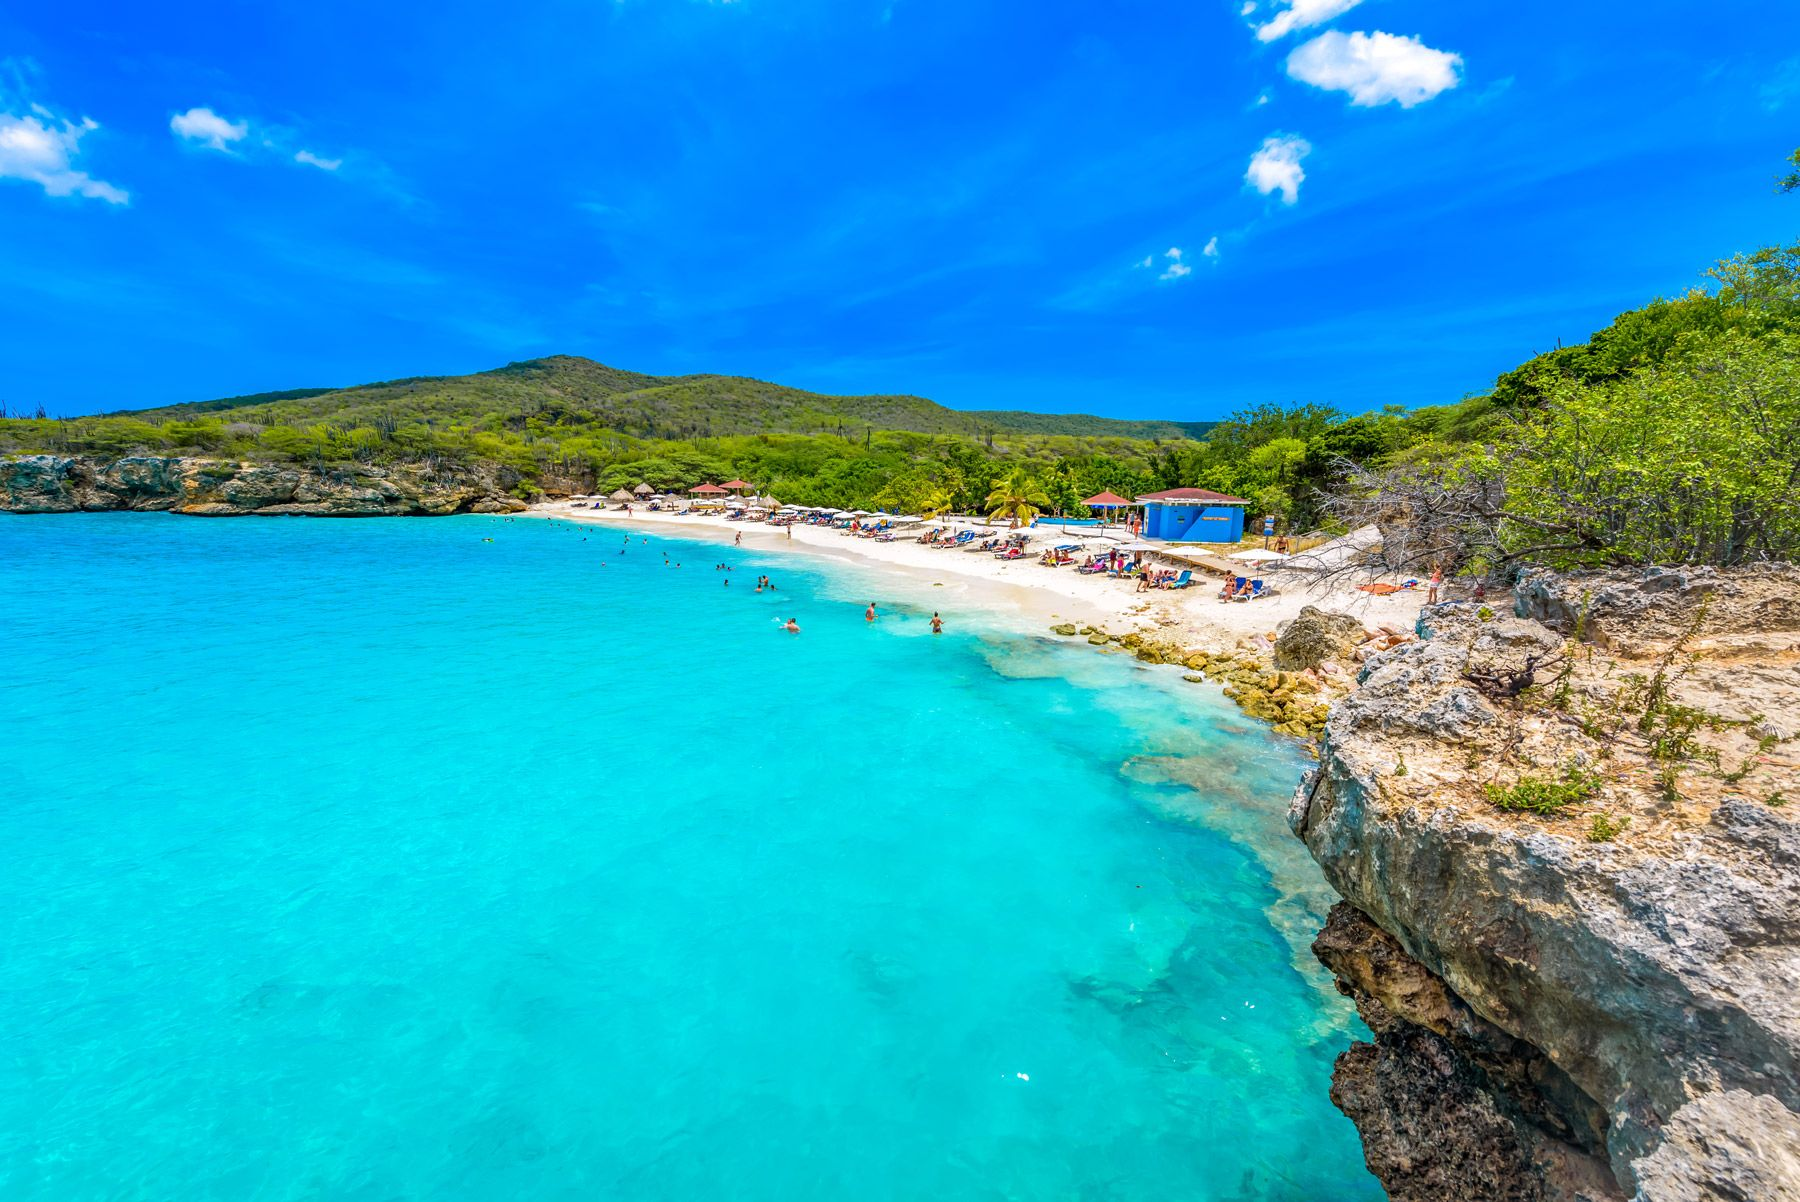 Grote Knip Beach Curacao Netherlands Antilles